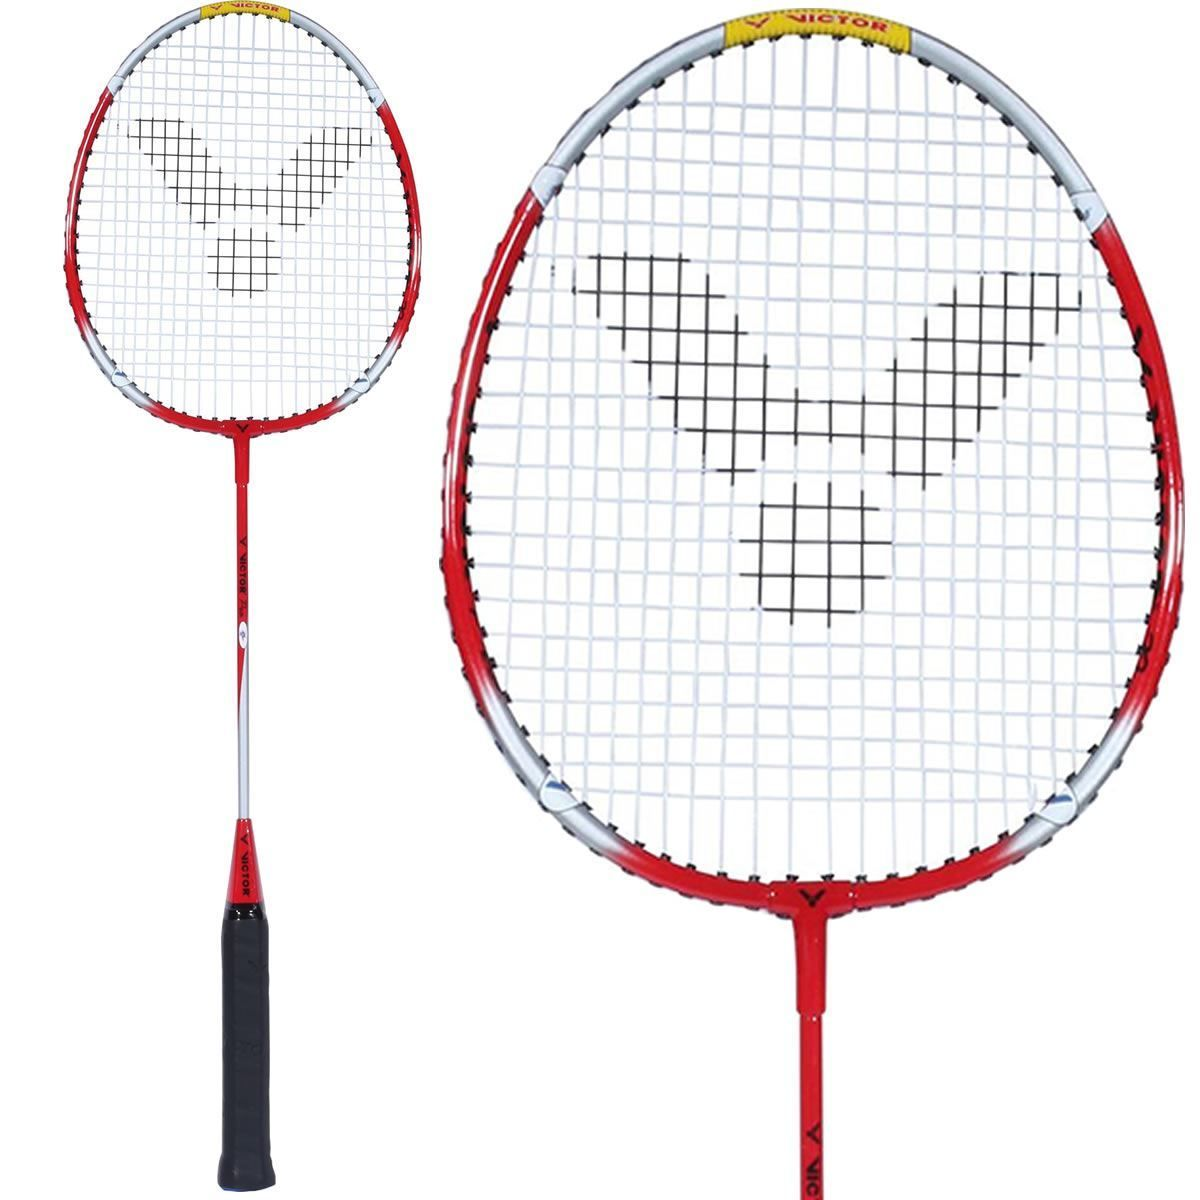 Victor Pro Badminton Racket - Red Silver in 2020 ...